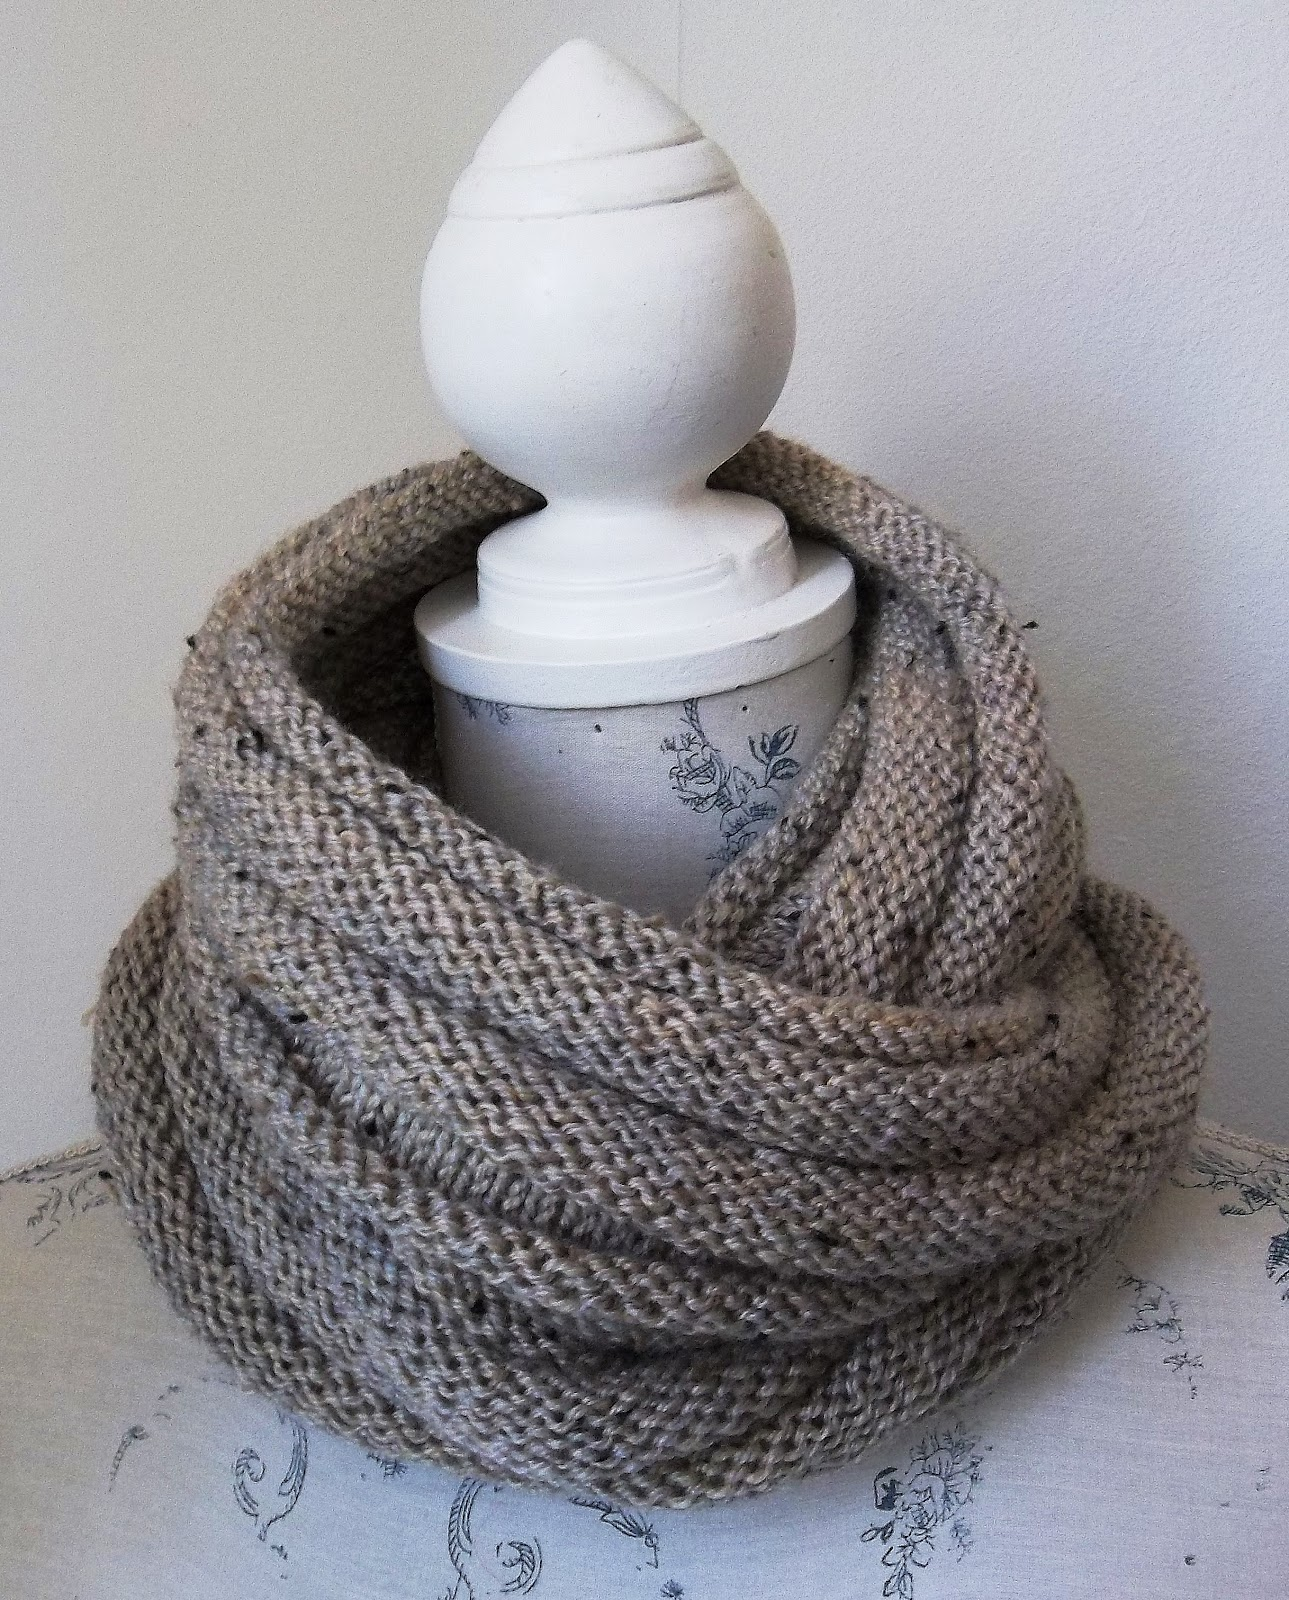 Easy Cowl Knitting Patterns : HAND KNITTING PATTERNS. ARAN. COWLS, HATS, SCARVES AND NECK WARMERS